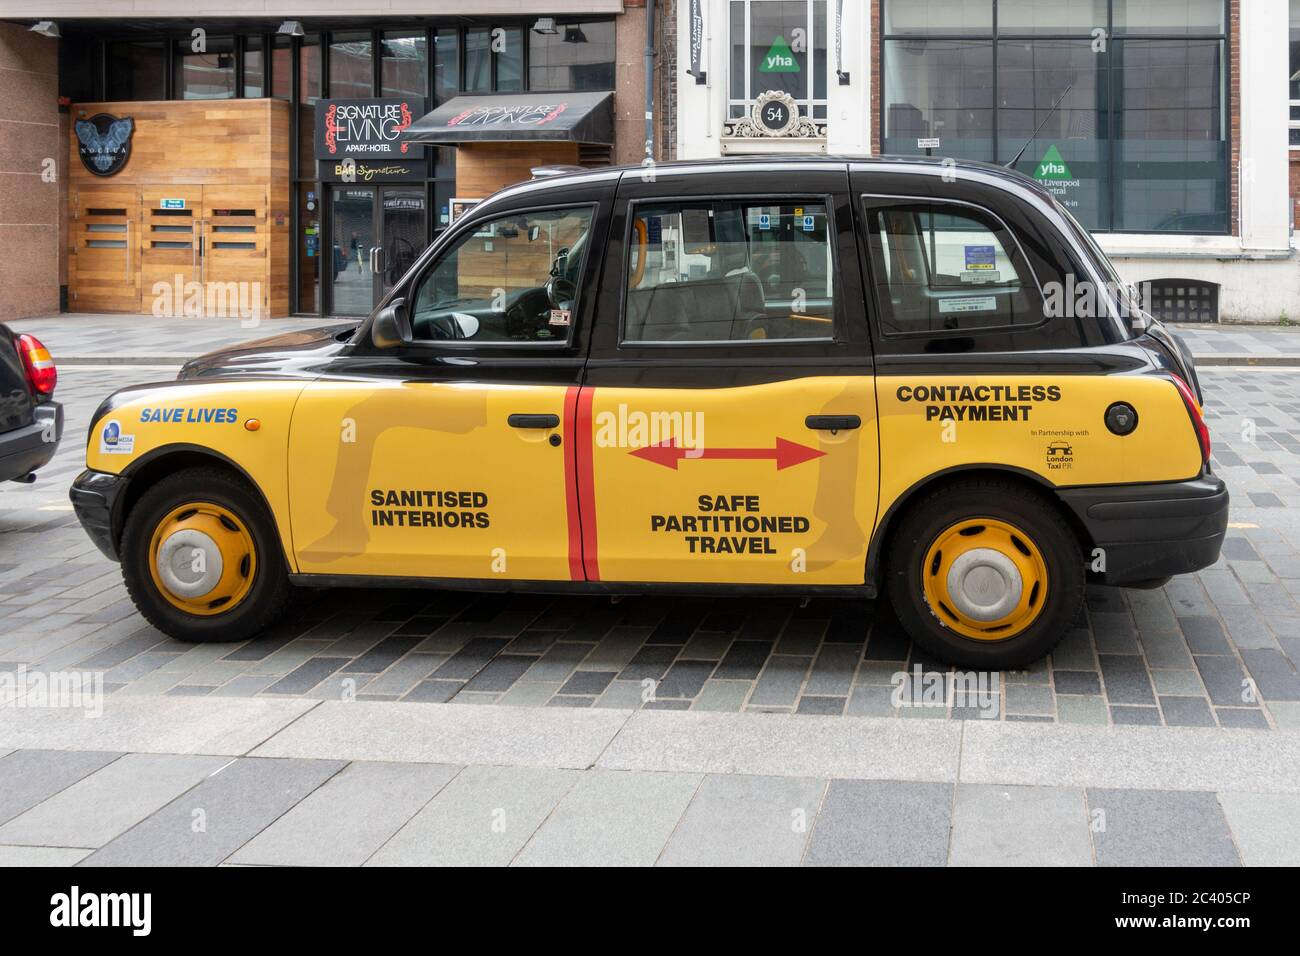 taxi-for-hire-with-safety-health-notices